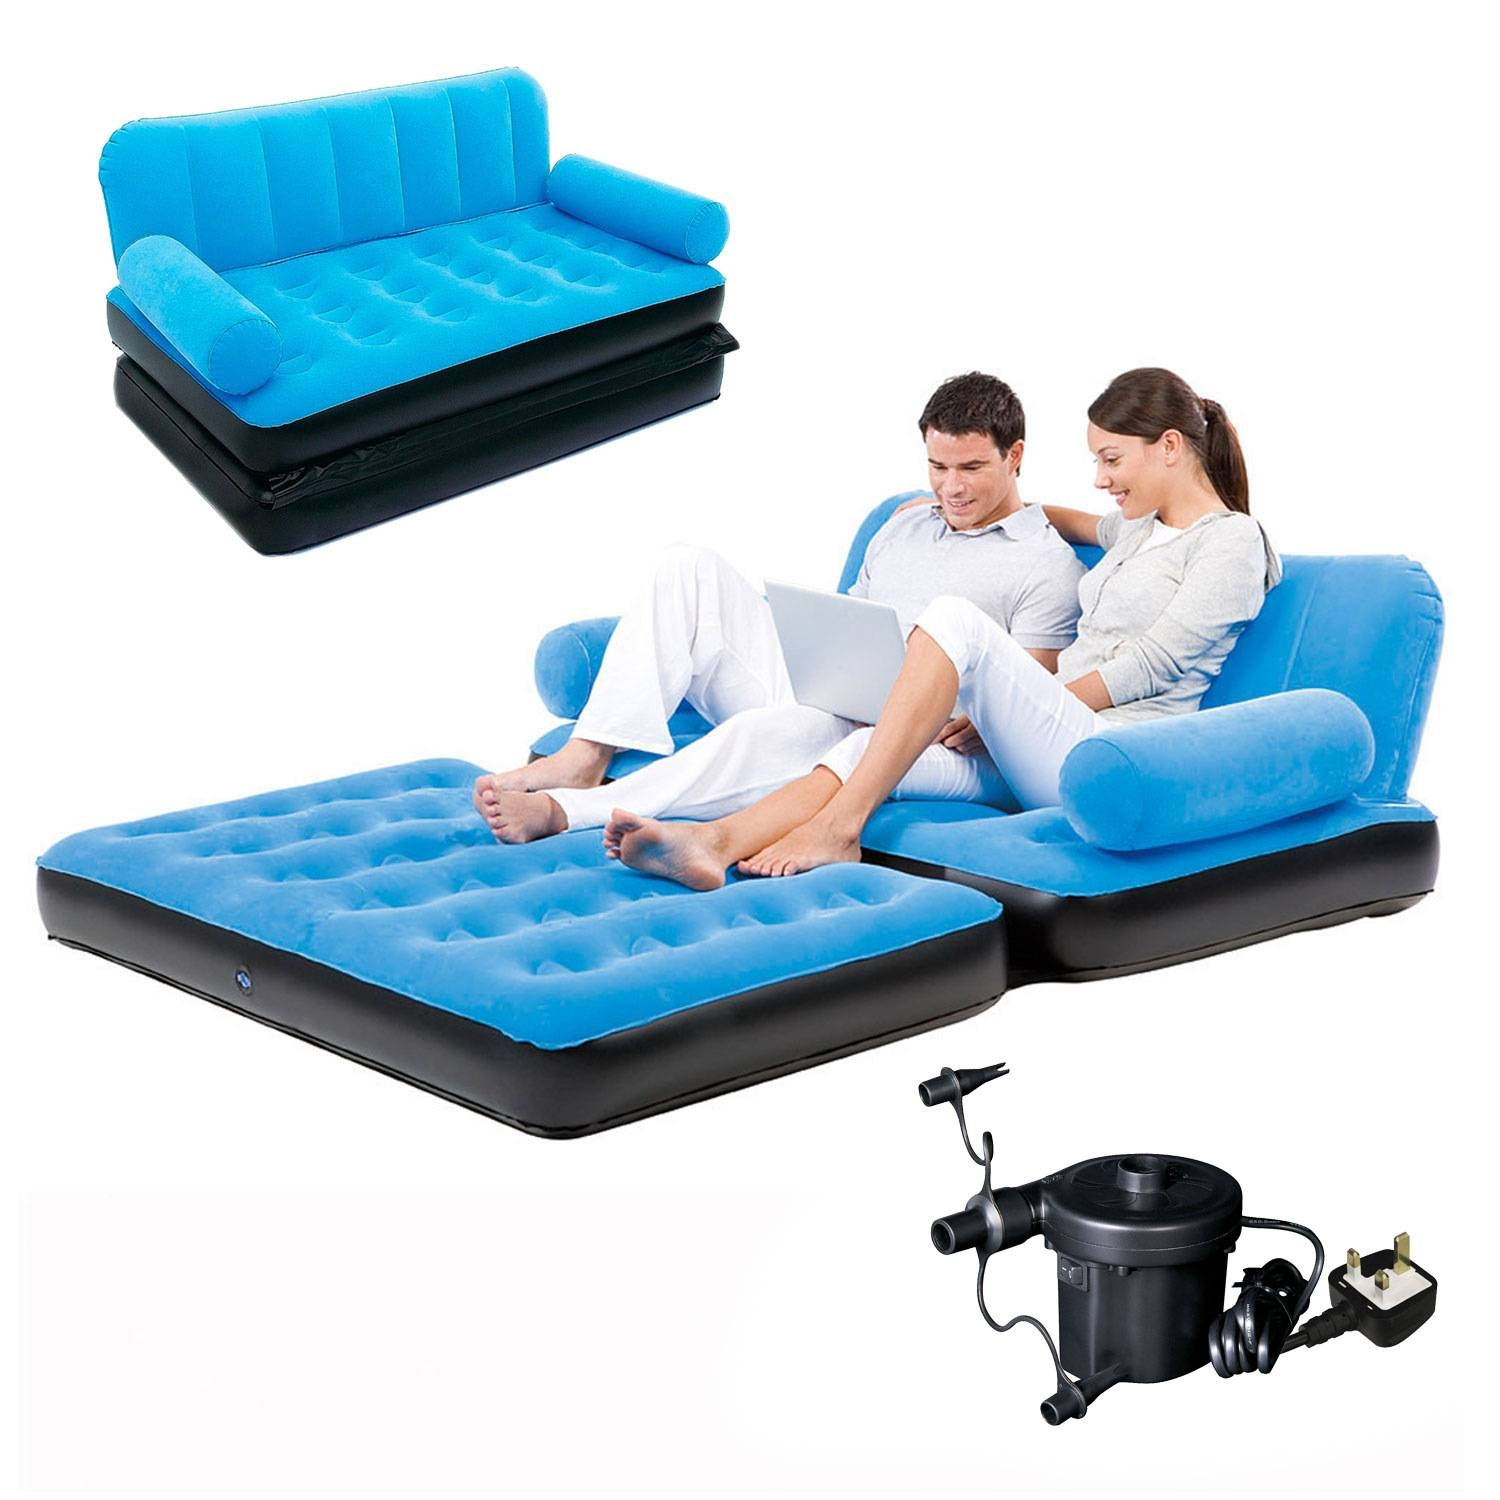 Inflatable Double Sofa Air Bed Couch Blow Up Mattress With Pump | Ebay within Intex Inflatable Sofas (Image 2 of 15)